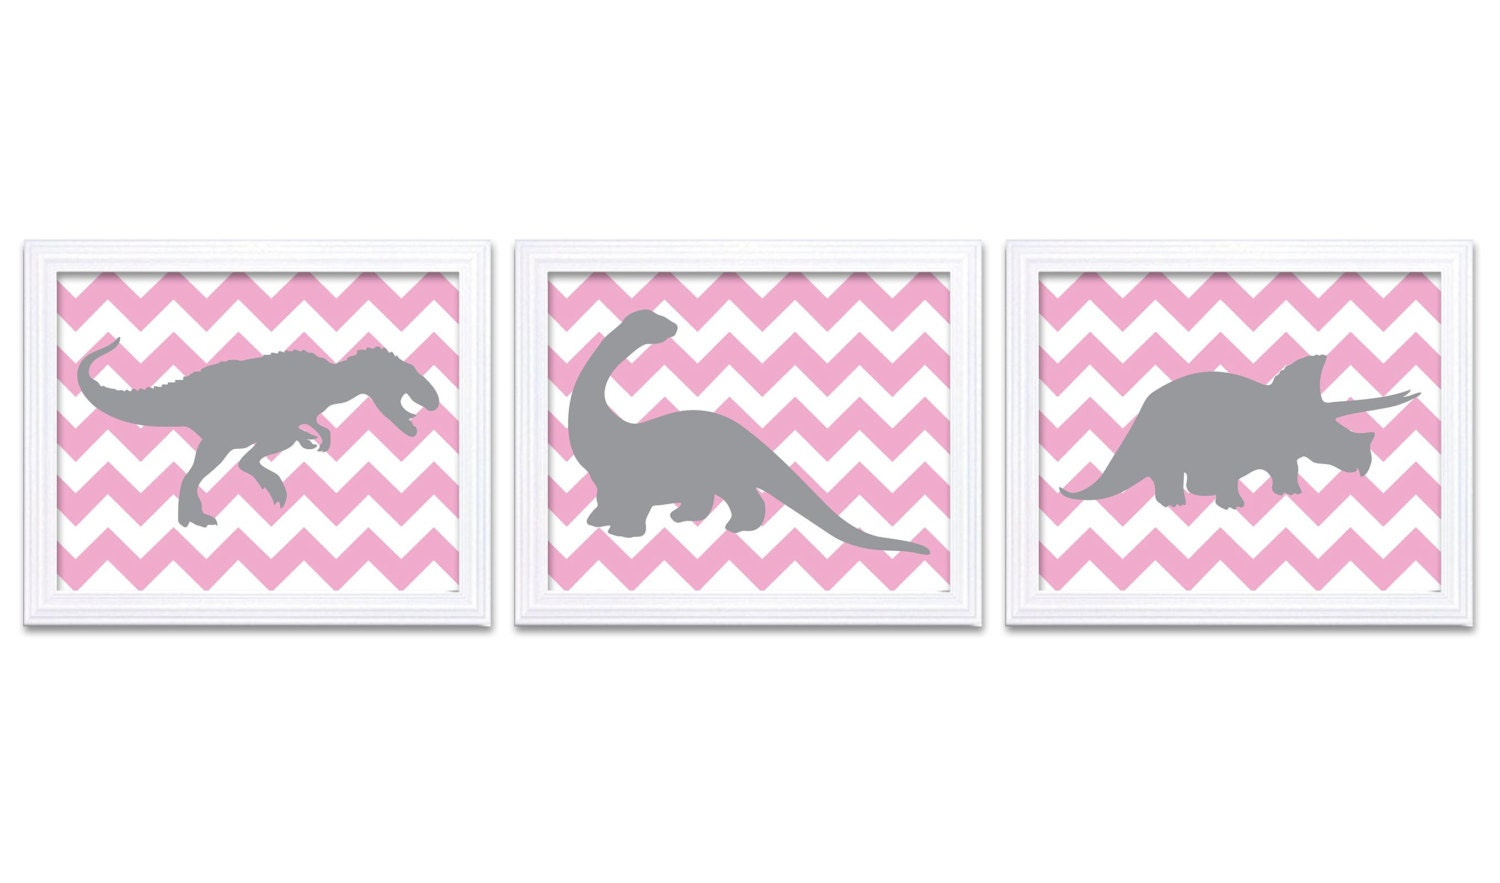 Dinosaur Nursery Art Dinosaurs Print Set of 3 Prints Pink Gray Grey Chevron Tyrannosaurus Rex Tricer